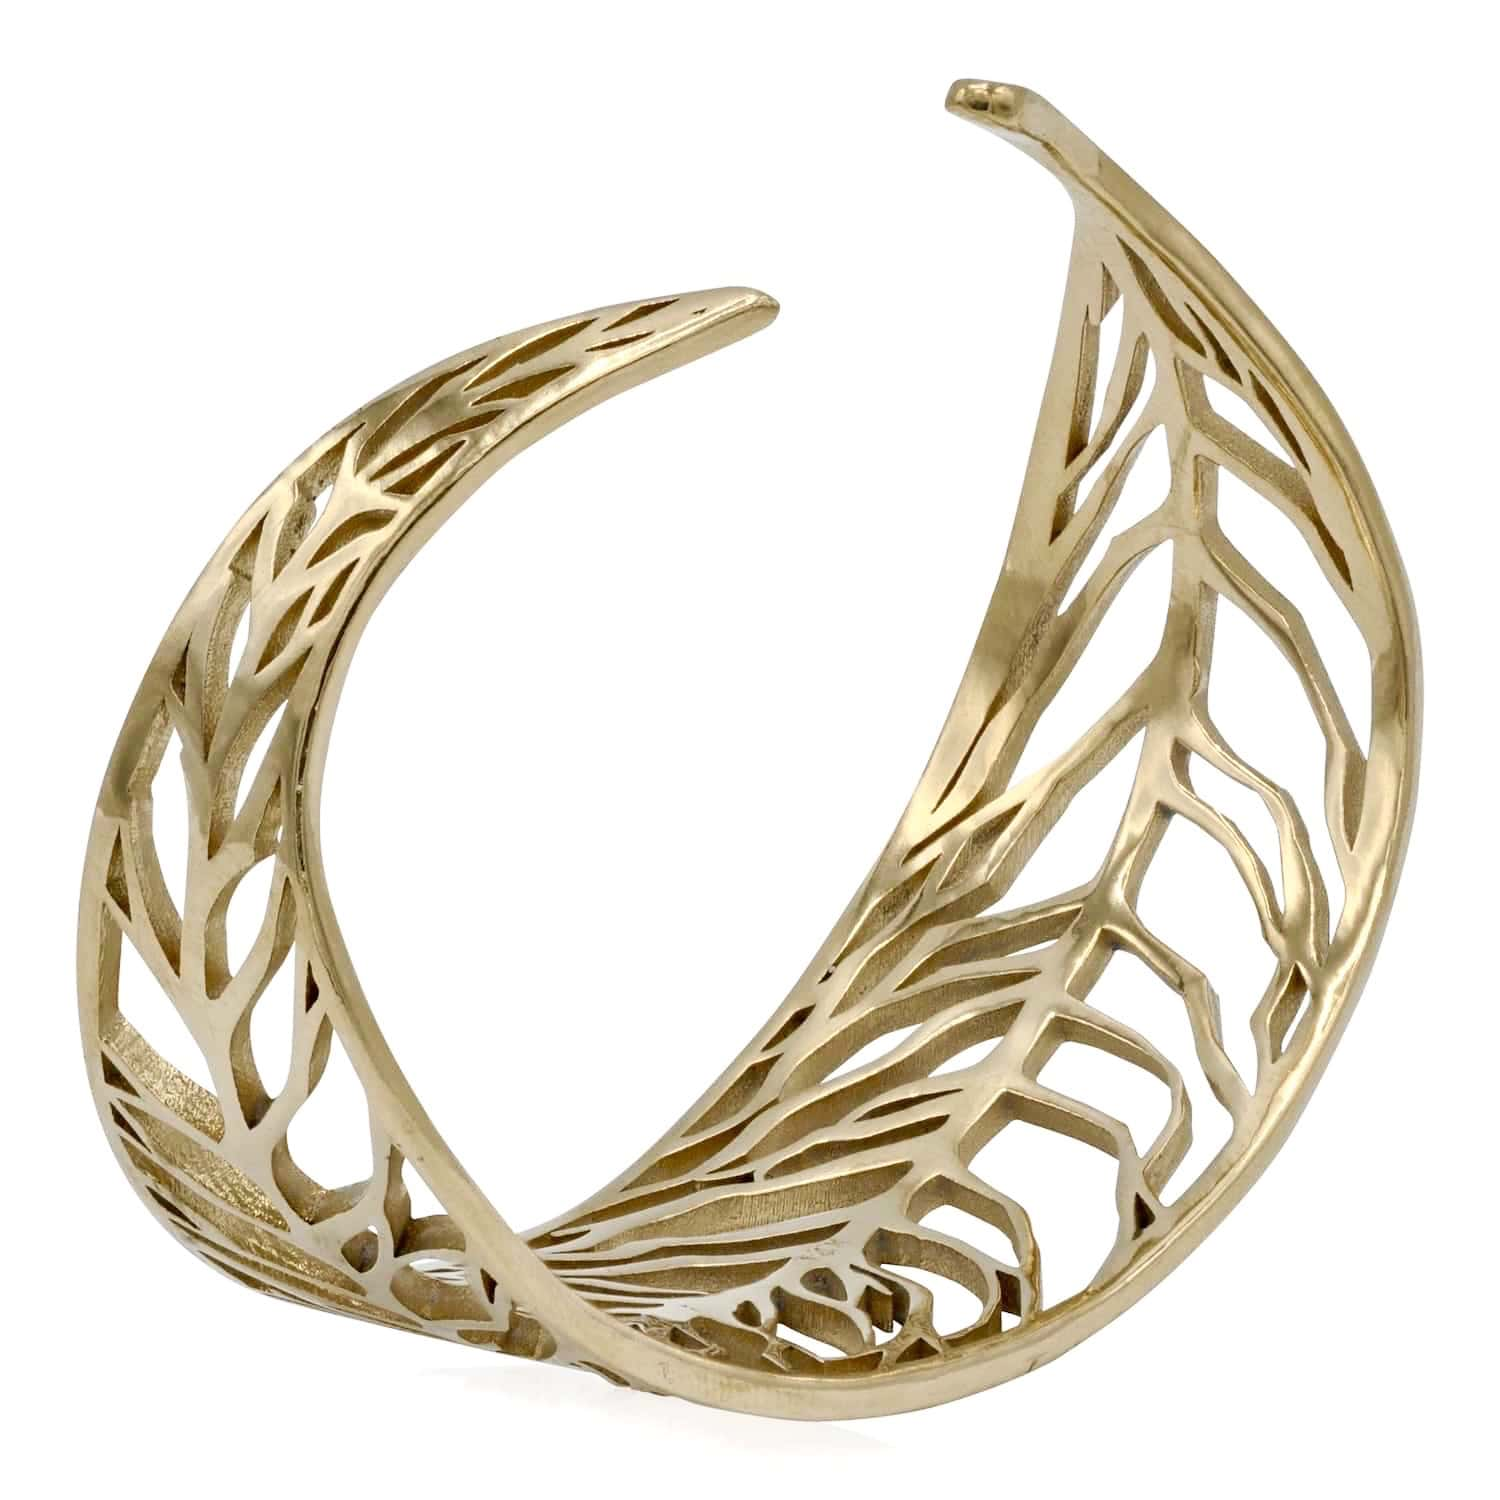 willow-cuff-bracelet-gold-14k-gold-bracelet-3D-printed-jewelry - 2 (1).jpg